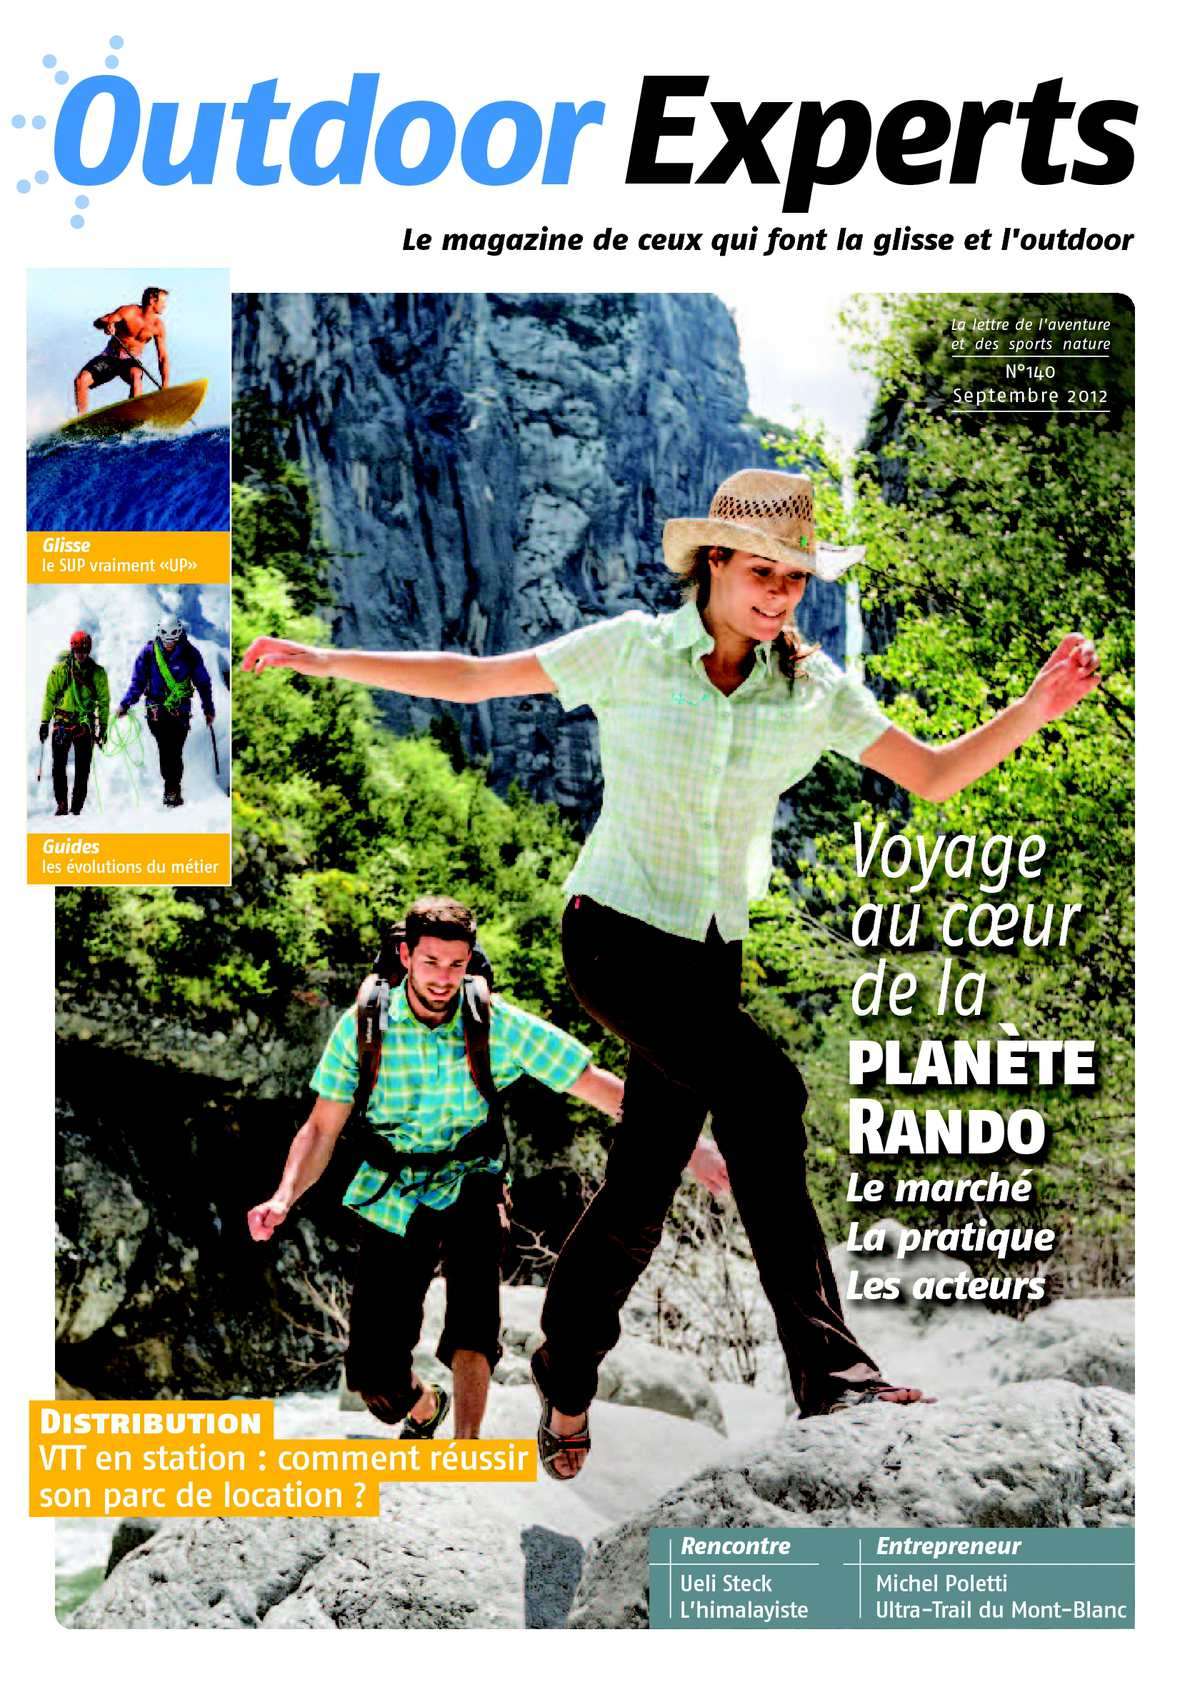 new styles 5d939 6cca3 Calaméo - Outdoor Experts magazine n°140 septembre 2012